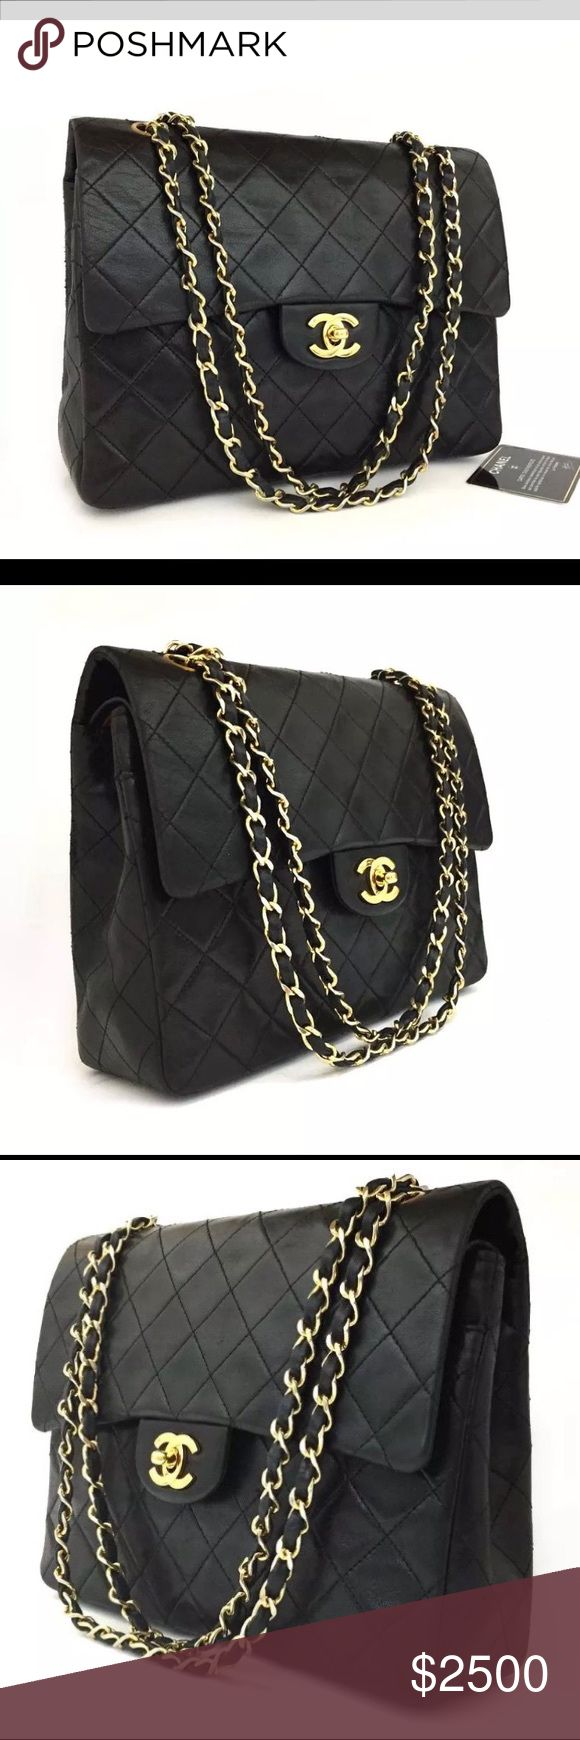 CHANEL Double Flap 25 Quilted CC Logo Lambskin Pre-owned CHANEL Double Flap 25 Quilted CC Logo Lambskin w/chain Shoulder Bag Black. The over all is in good condition and used normally. Negligible signs of use. The item is sold in AS IS condition. Serial number / Date Code: 591588. It includes card of authentication. Dust bag is not included. CHANEL Bags Shoulder Bags